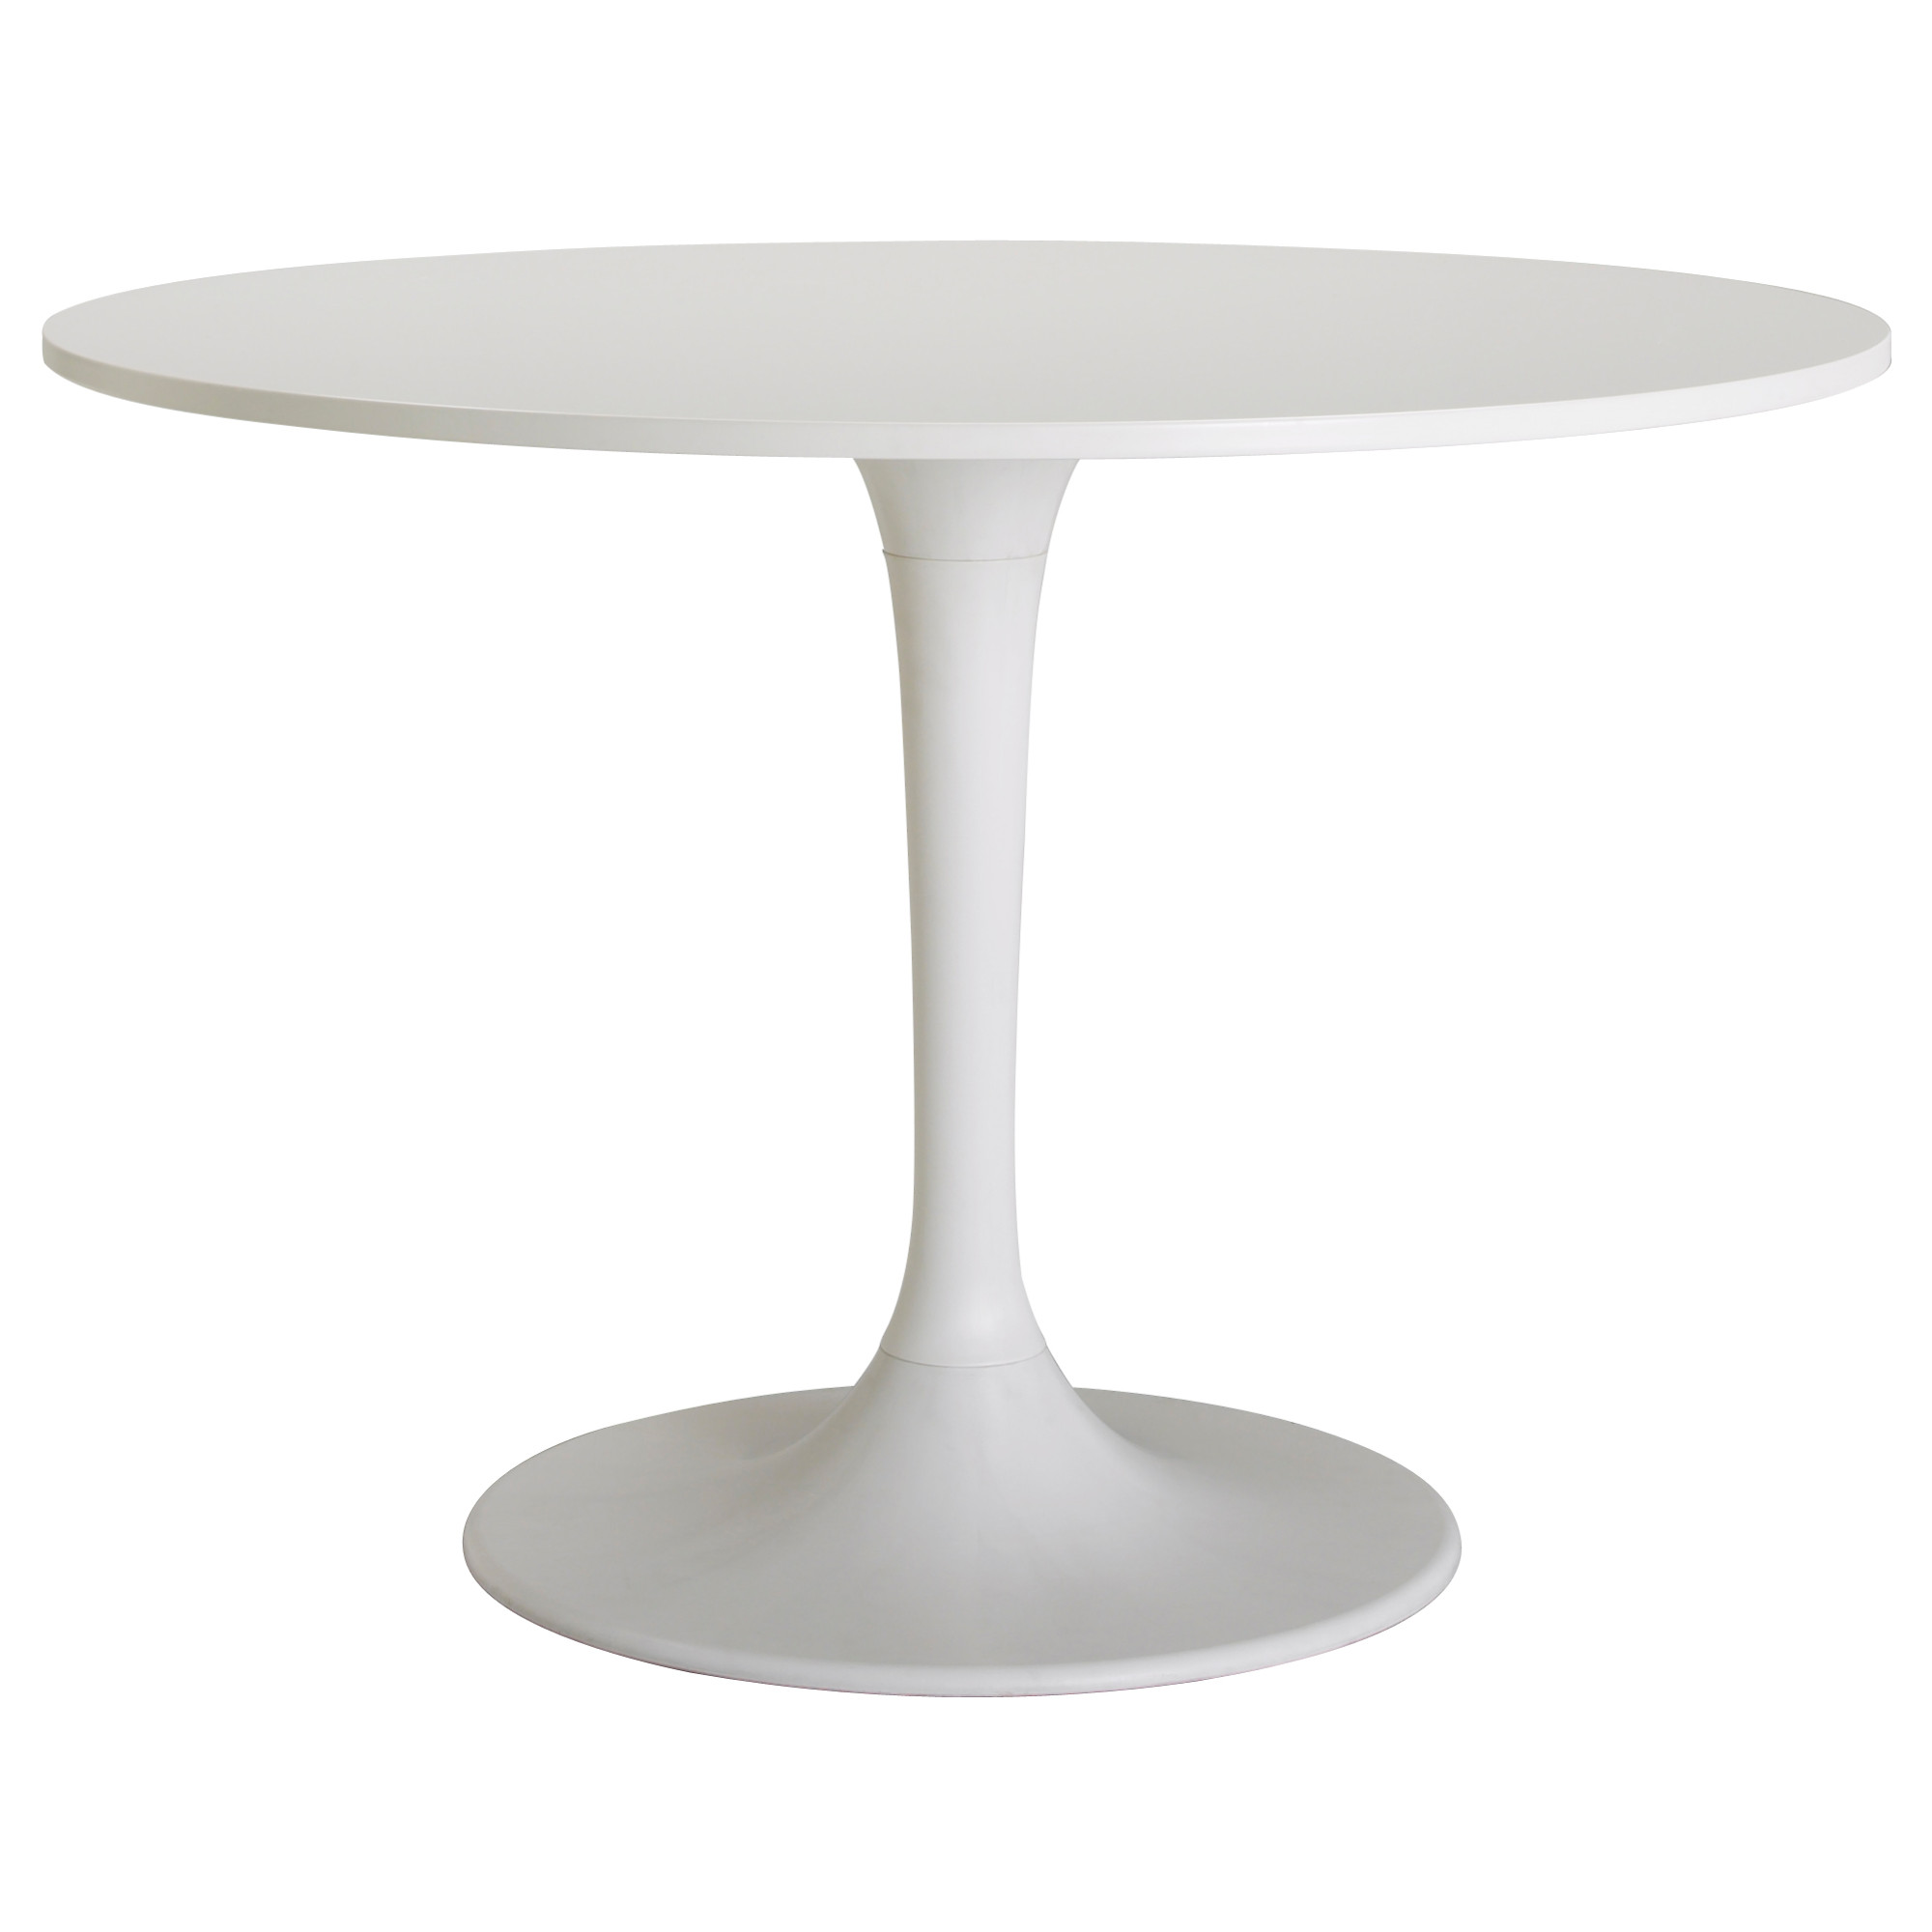 Popular DOCKSTA Table - IKEA white round dining table